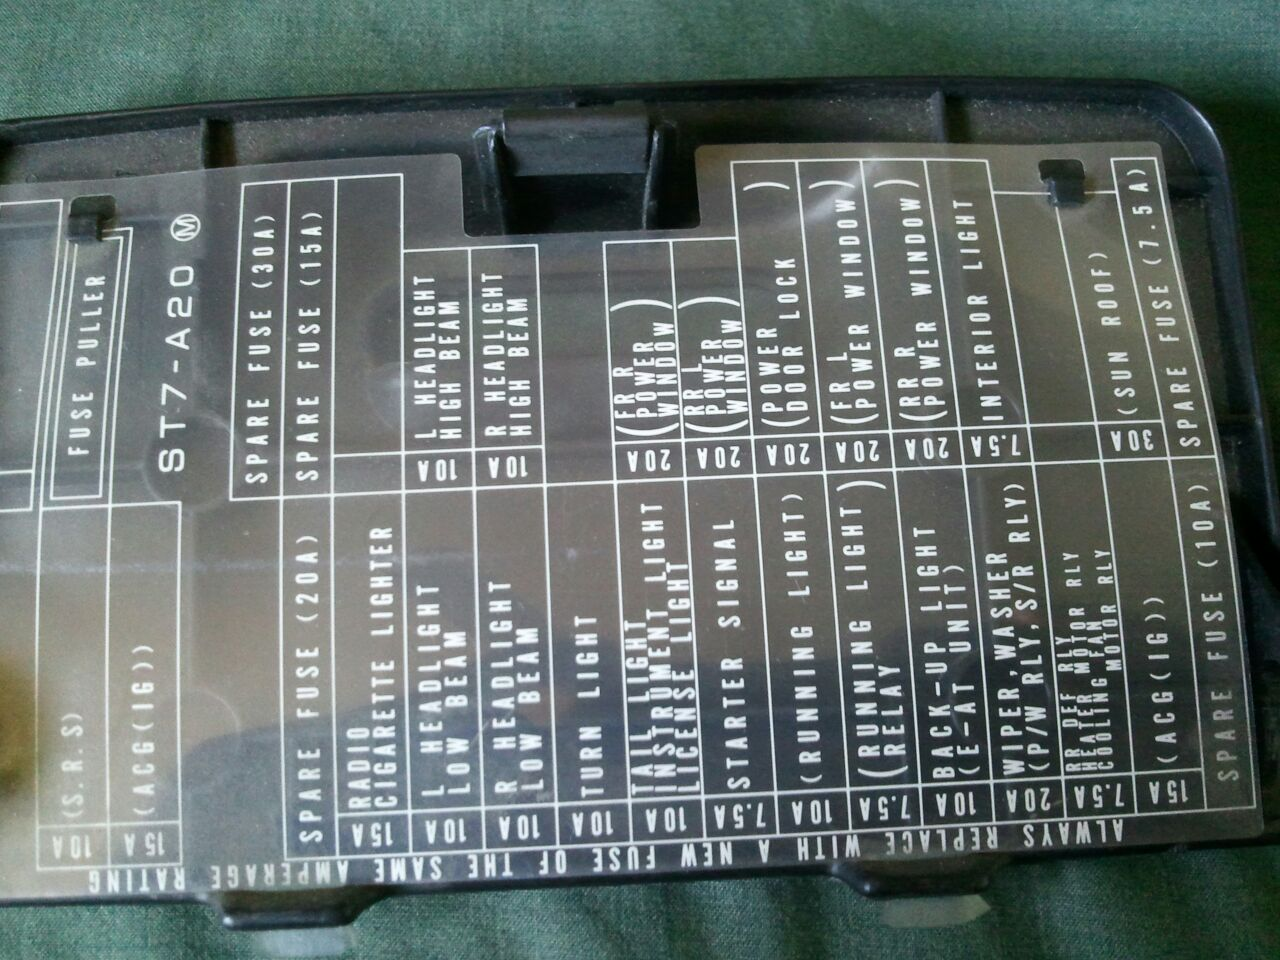 2000 Honda Civic Ex Fuse Box Diagram 300x192 2000 Honda Civic Ex Fuse